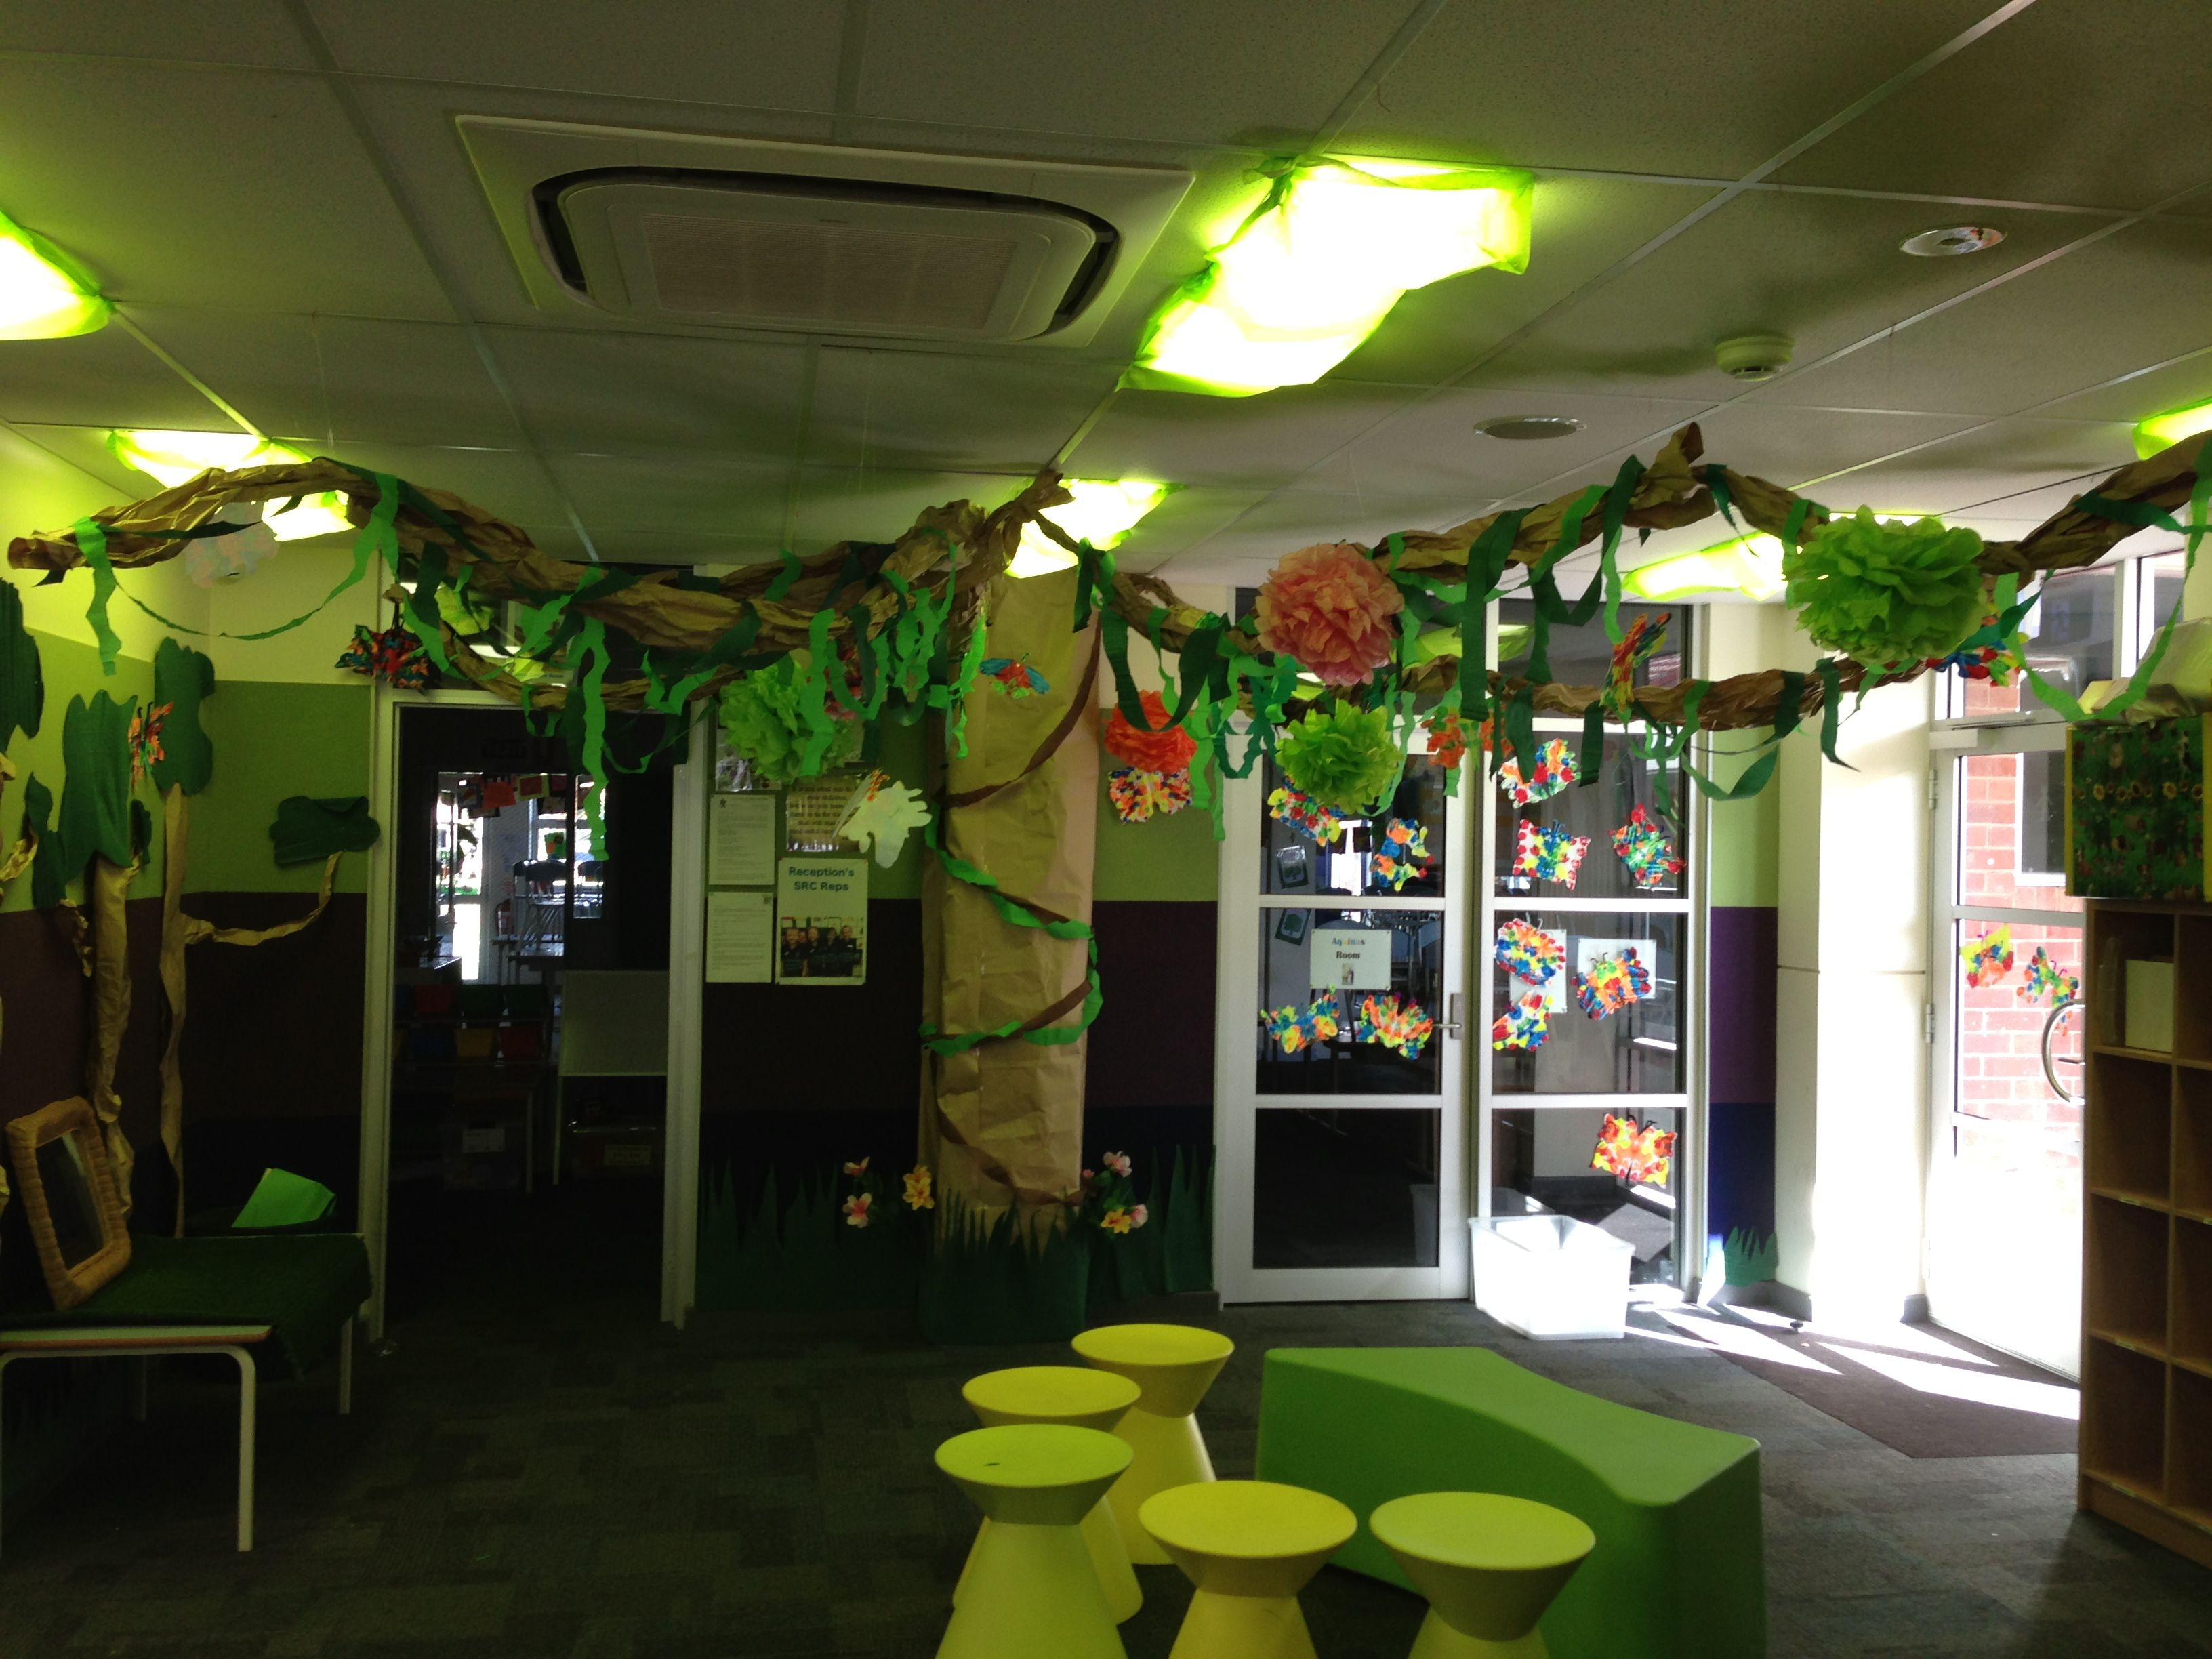 Rainforest Theme Classroom Ideas ~ Rainforest classroom theme rainforests pinterest